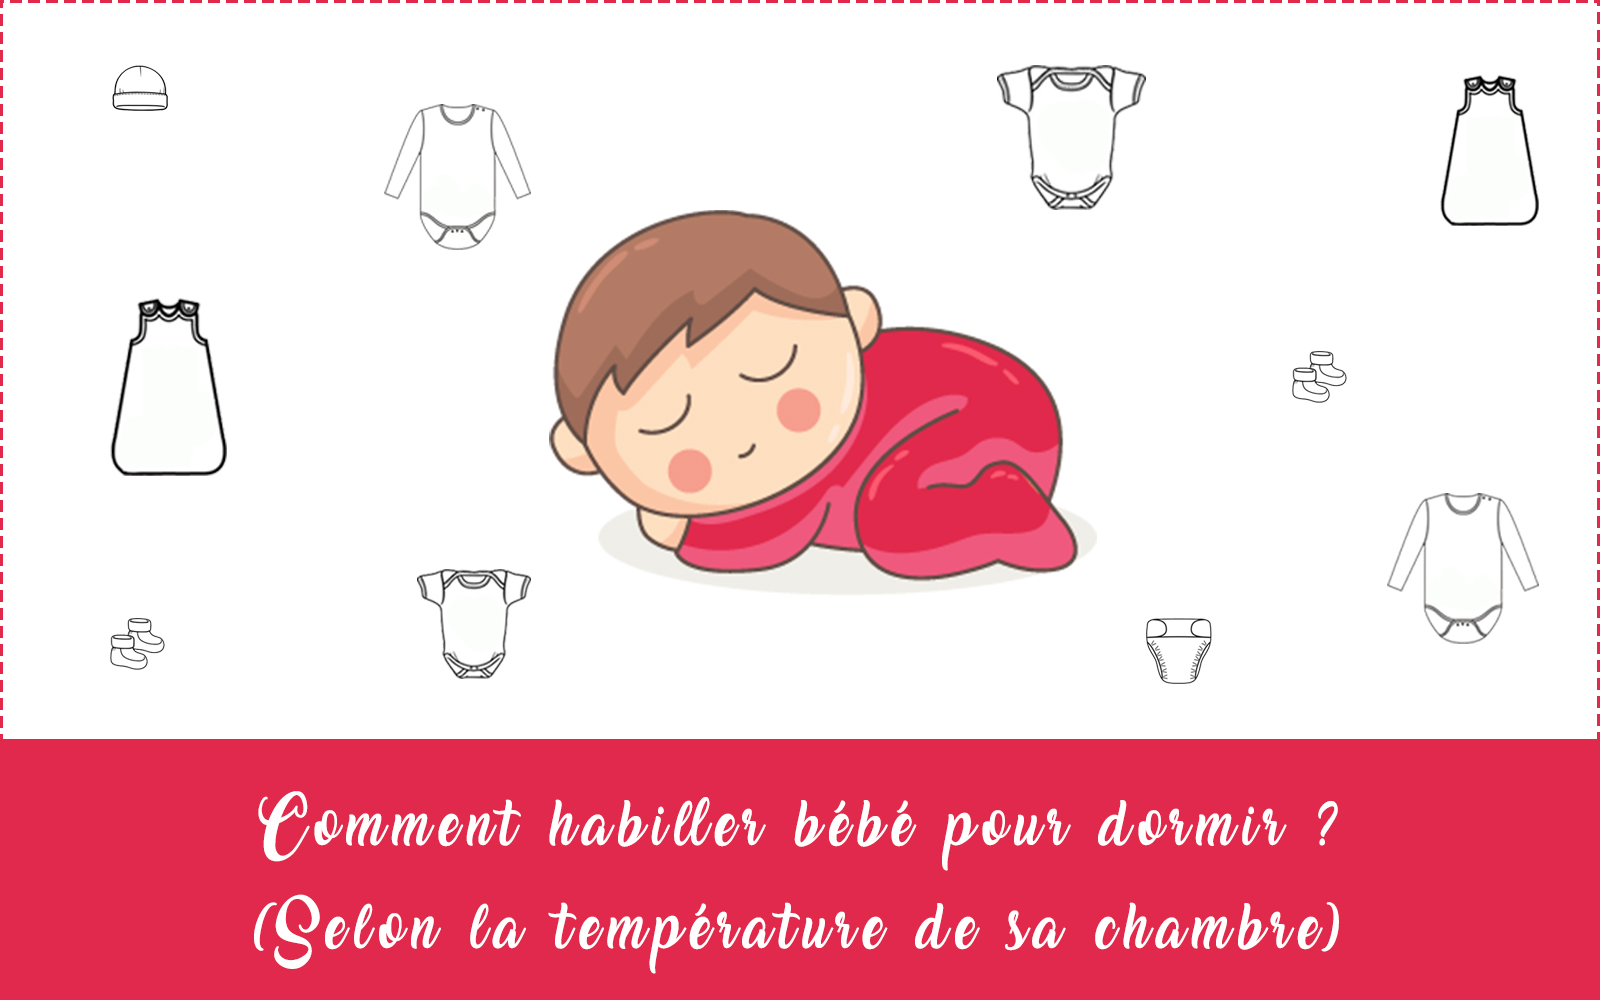 comment habiller b b la nuit selon la temp rature de sa chambre sch ma cooking for my baby. Black Bedroom Furniture Sets. Home Design Ideas